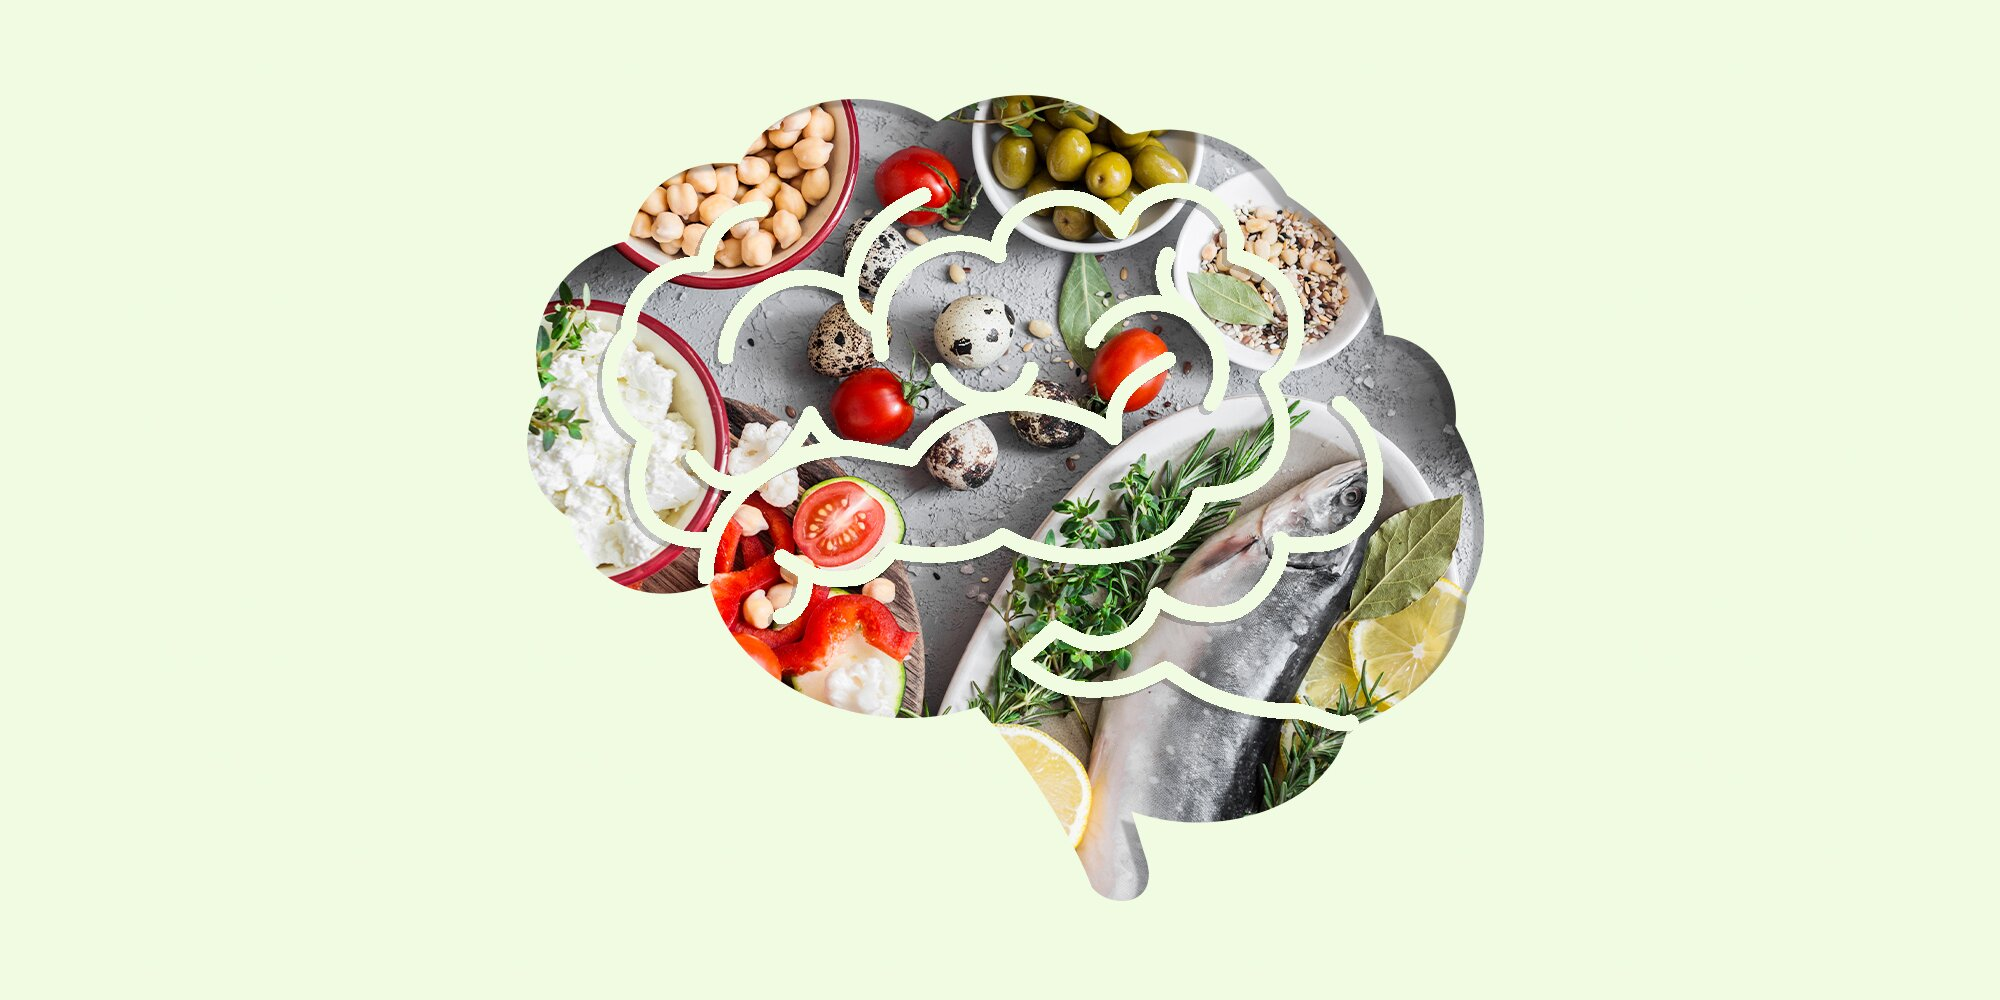 Following This Diet May Help Prevent Dementia, According to a New Study